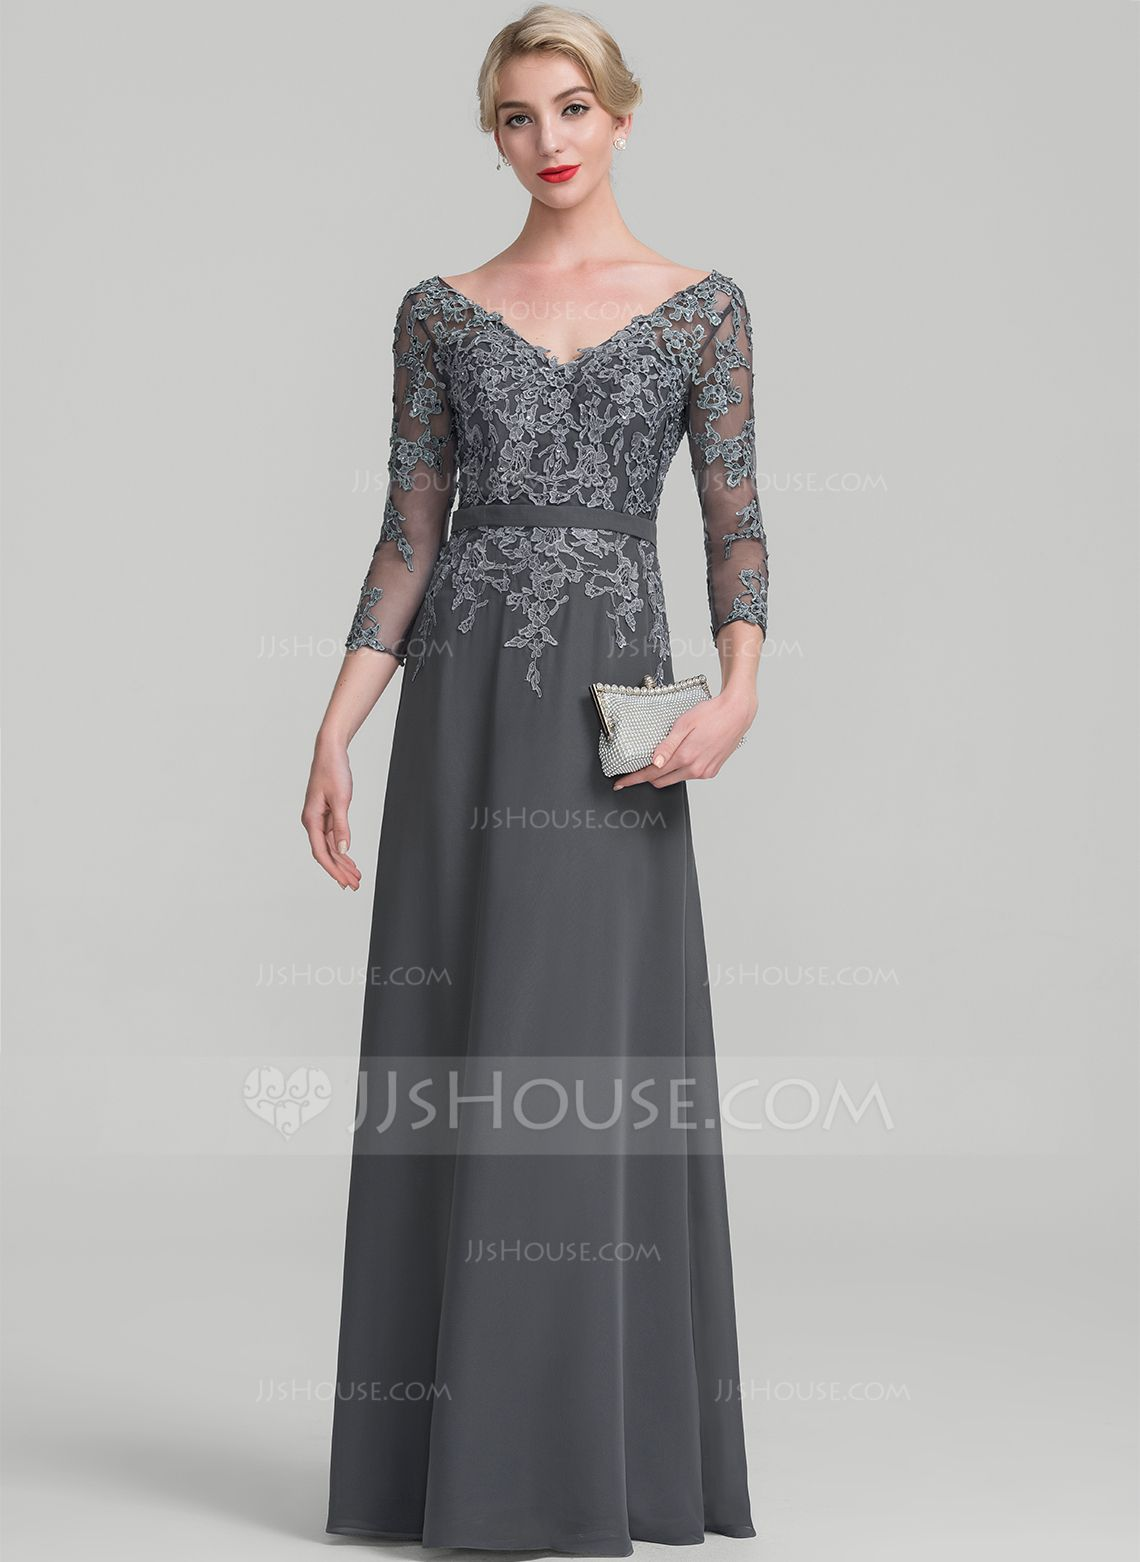 Fashion dress for wedding party  ALinePrincess Vneck FloorLength Chiffon Lace Mother of the Bride